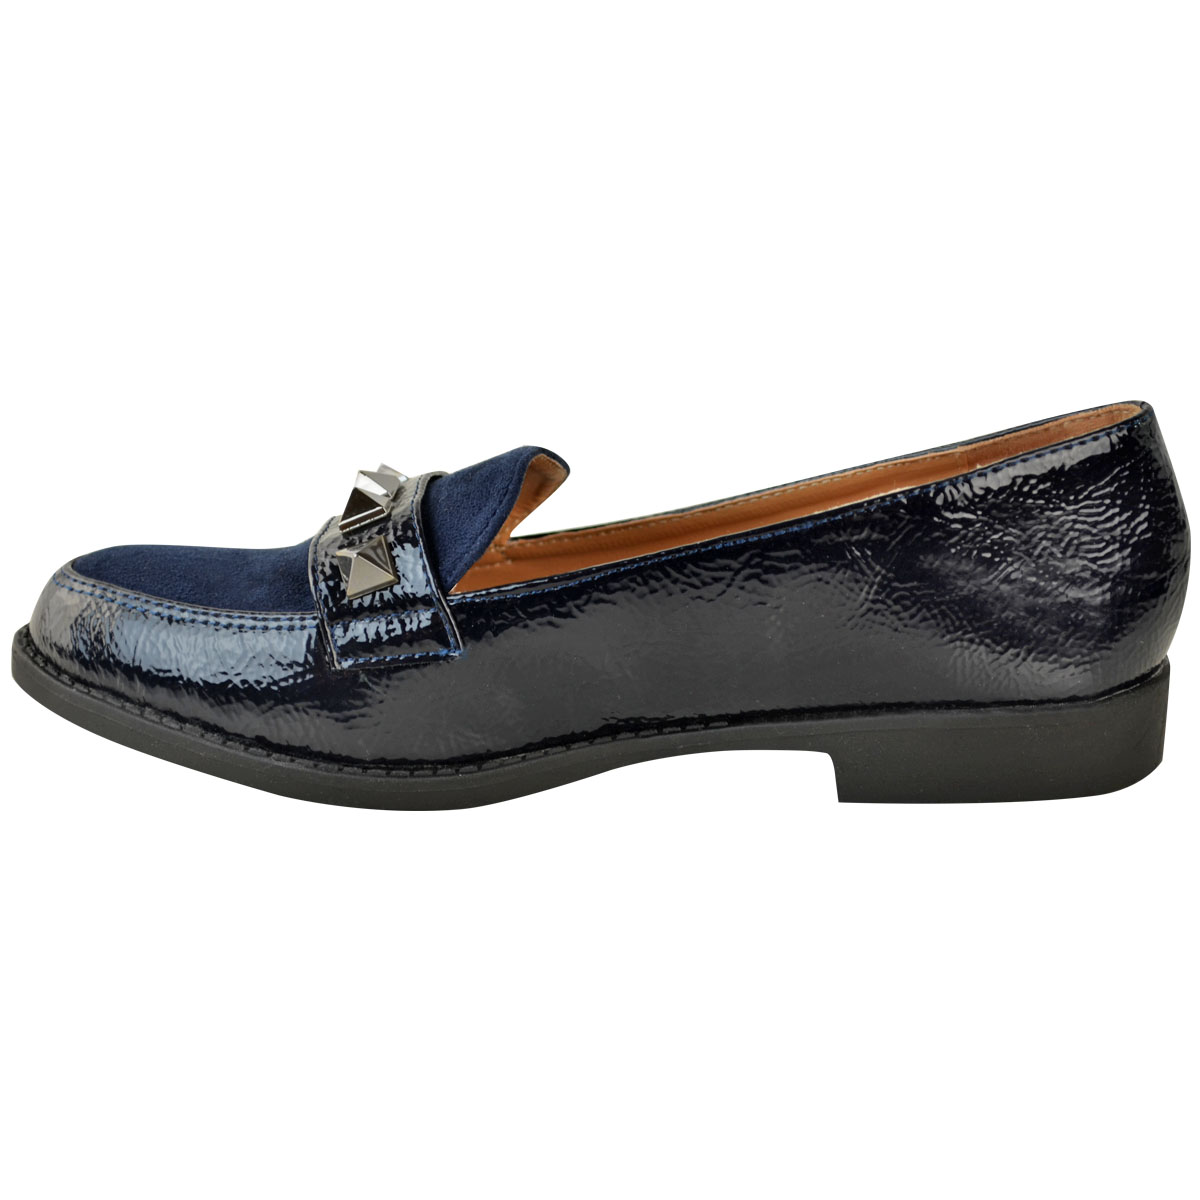 Womens-Ladies-Loafers-Brogues-Pumps-Casual-School-Office-Comfy-Work-Flats-Size thumbnail 12